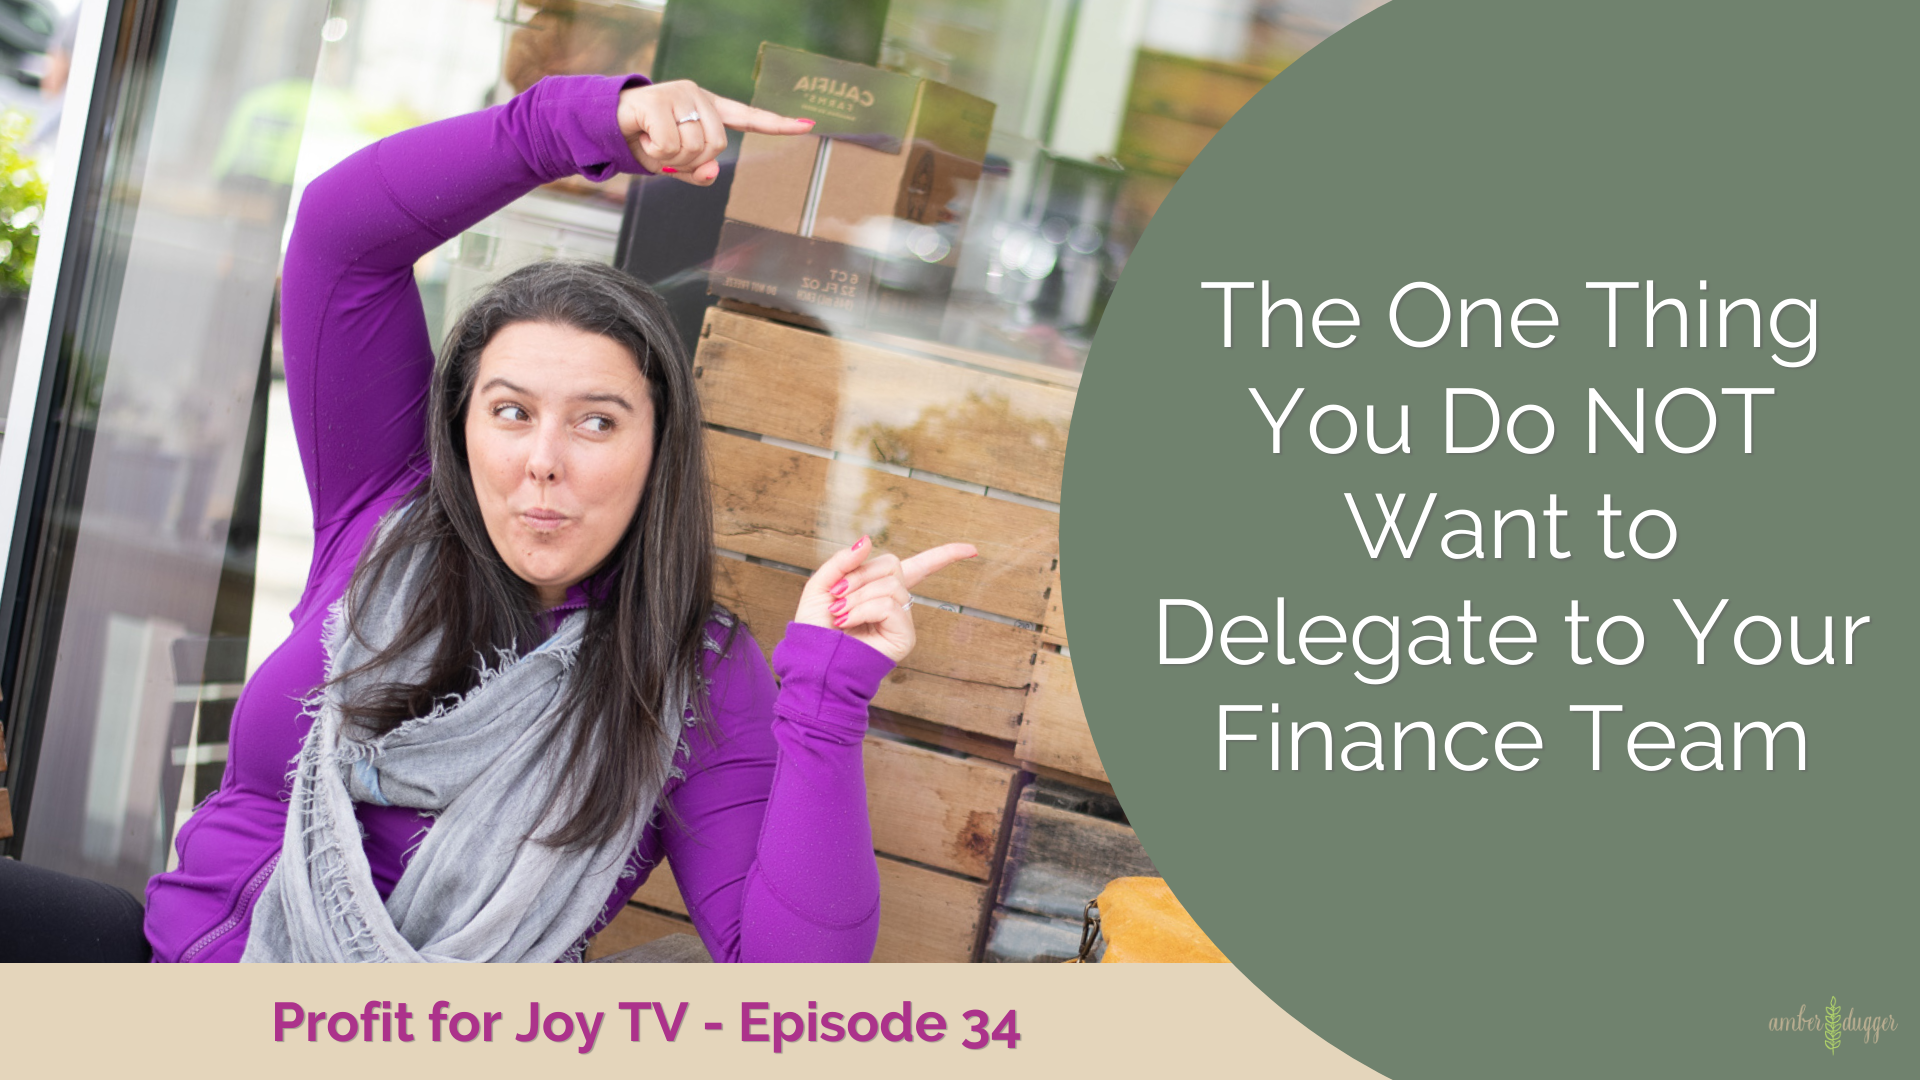 The One thing that you do NOT want to Delegate to your Finance Team